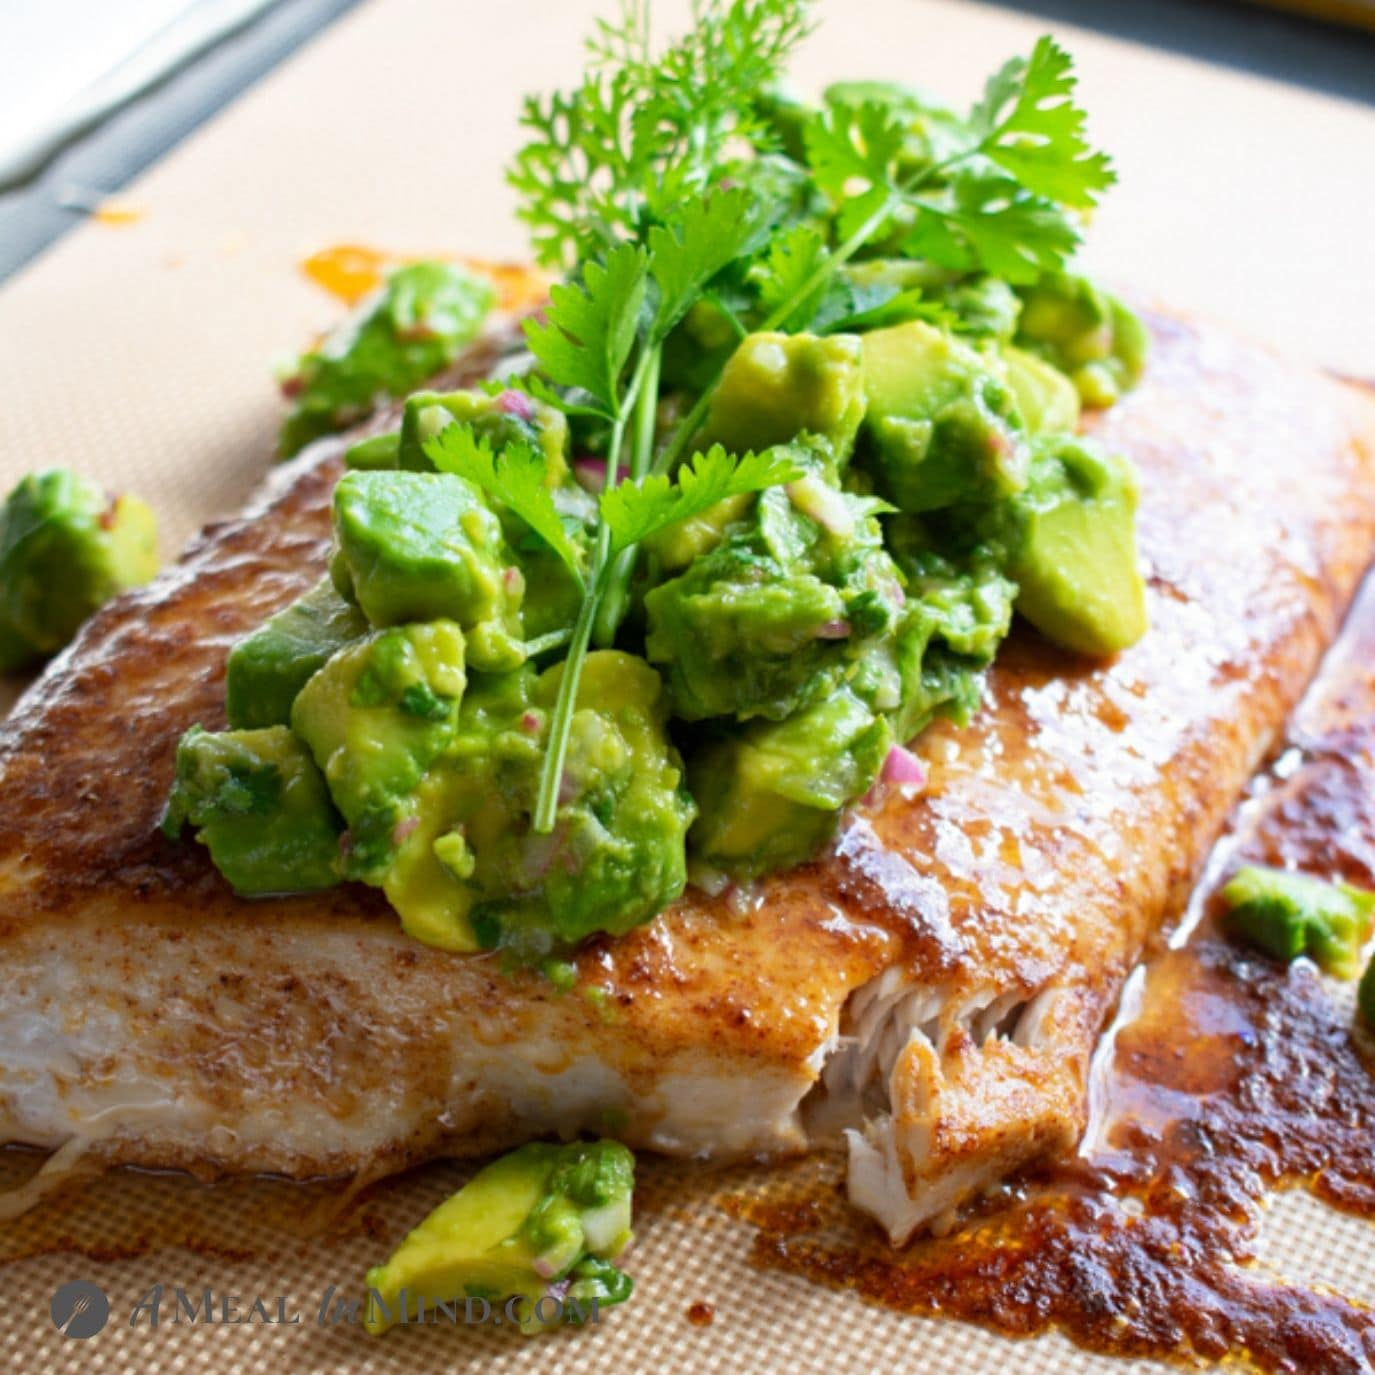 Spiced Baked Fish with Avocado Salsa